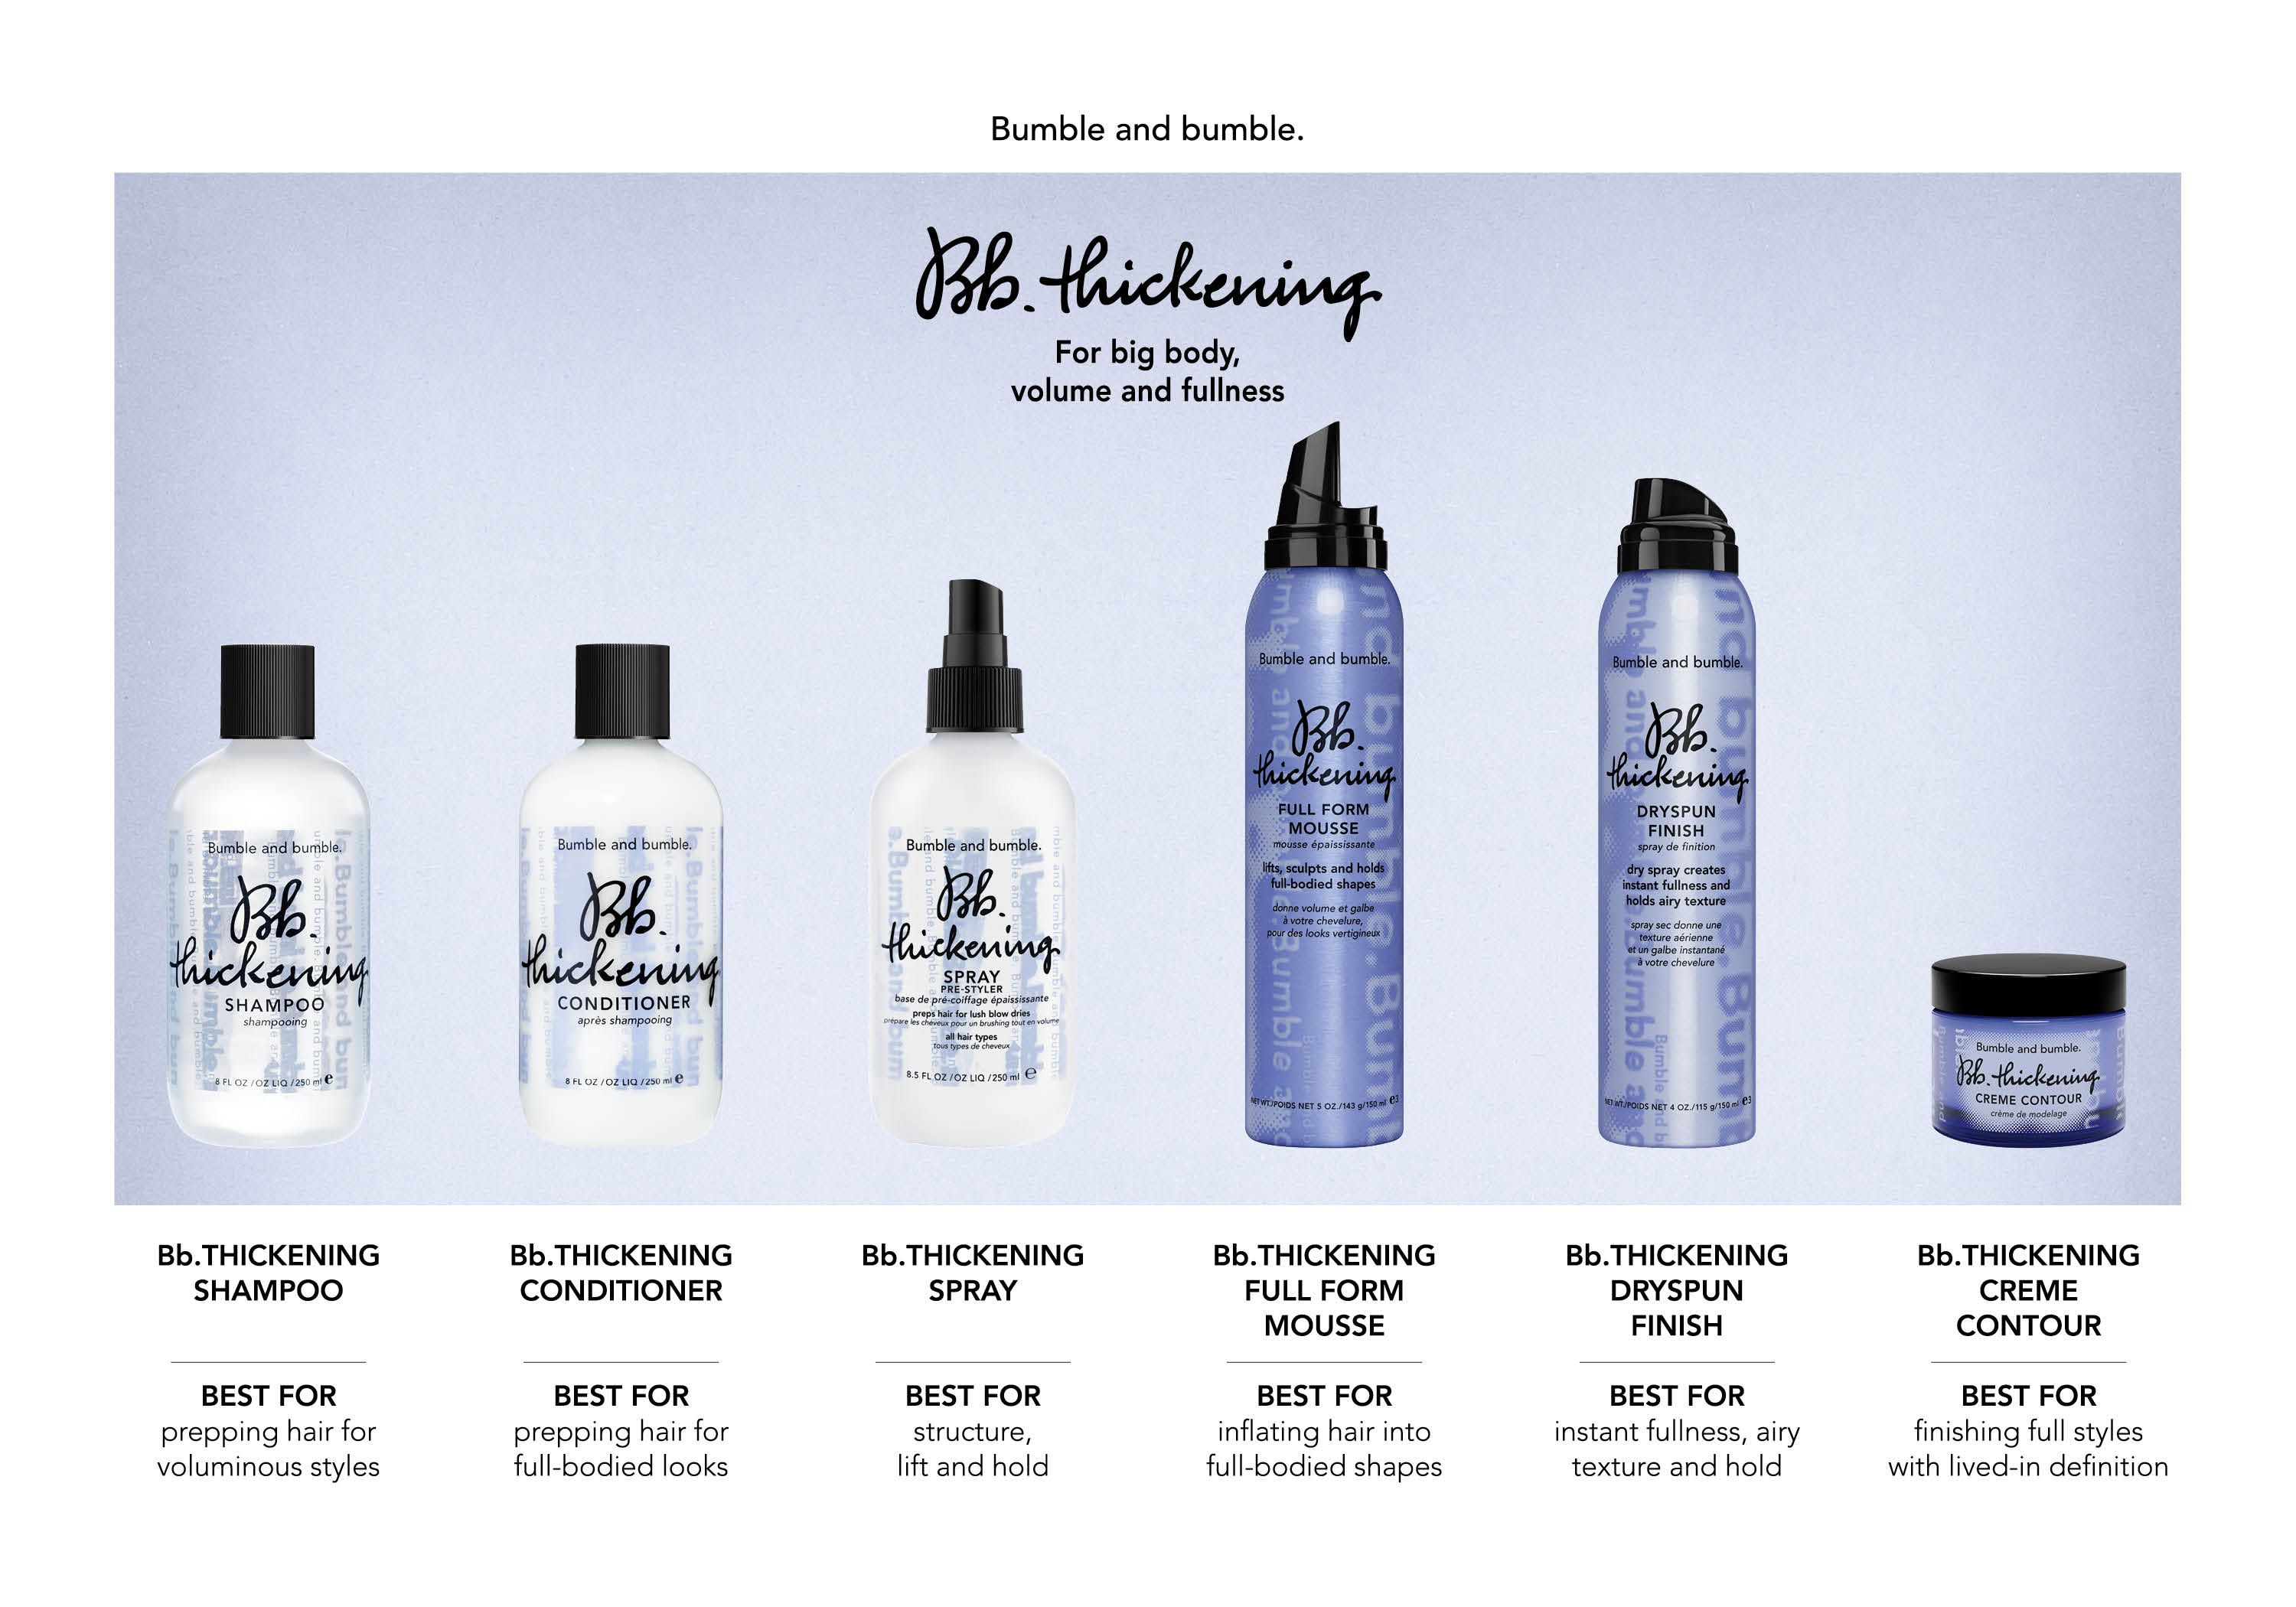 21877 Thk Family Chart Final 1 Jpg 3 000 2 100 Pixels Thickening Shampoo Shampoo Bumble And Bumble